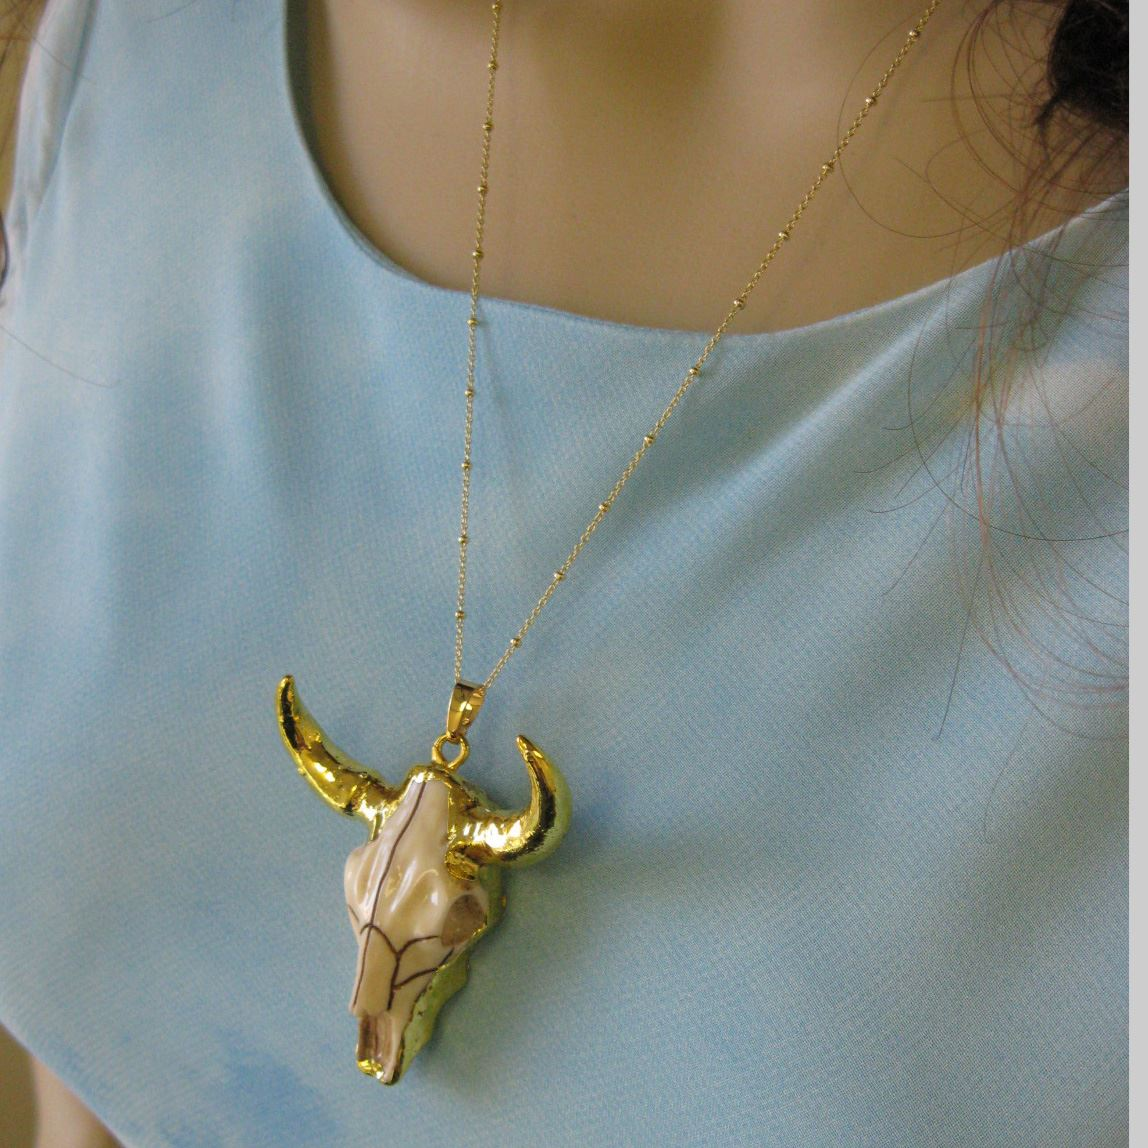 Gold Dipped Cattle Skull Necklace - Gold plated Sterling Silver Beaded Necklace Chain - Longhorn Skull Necklace